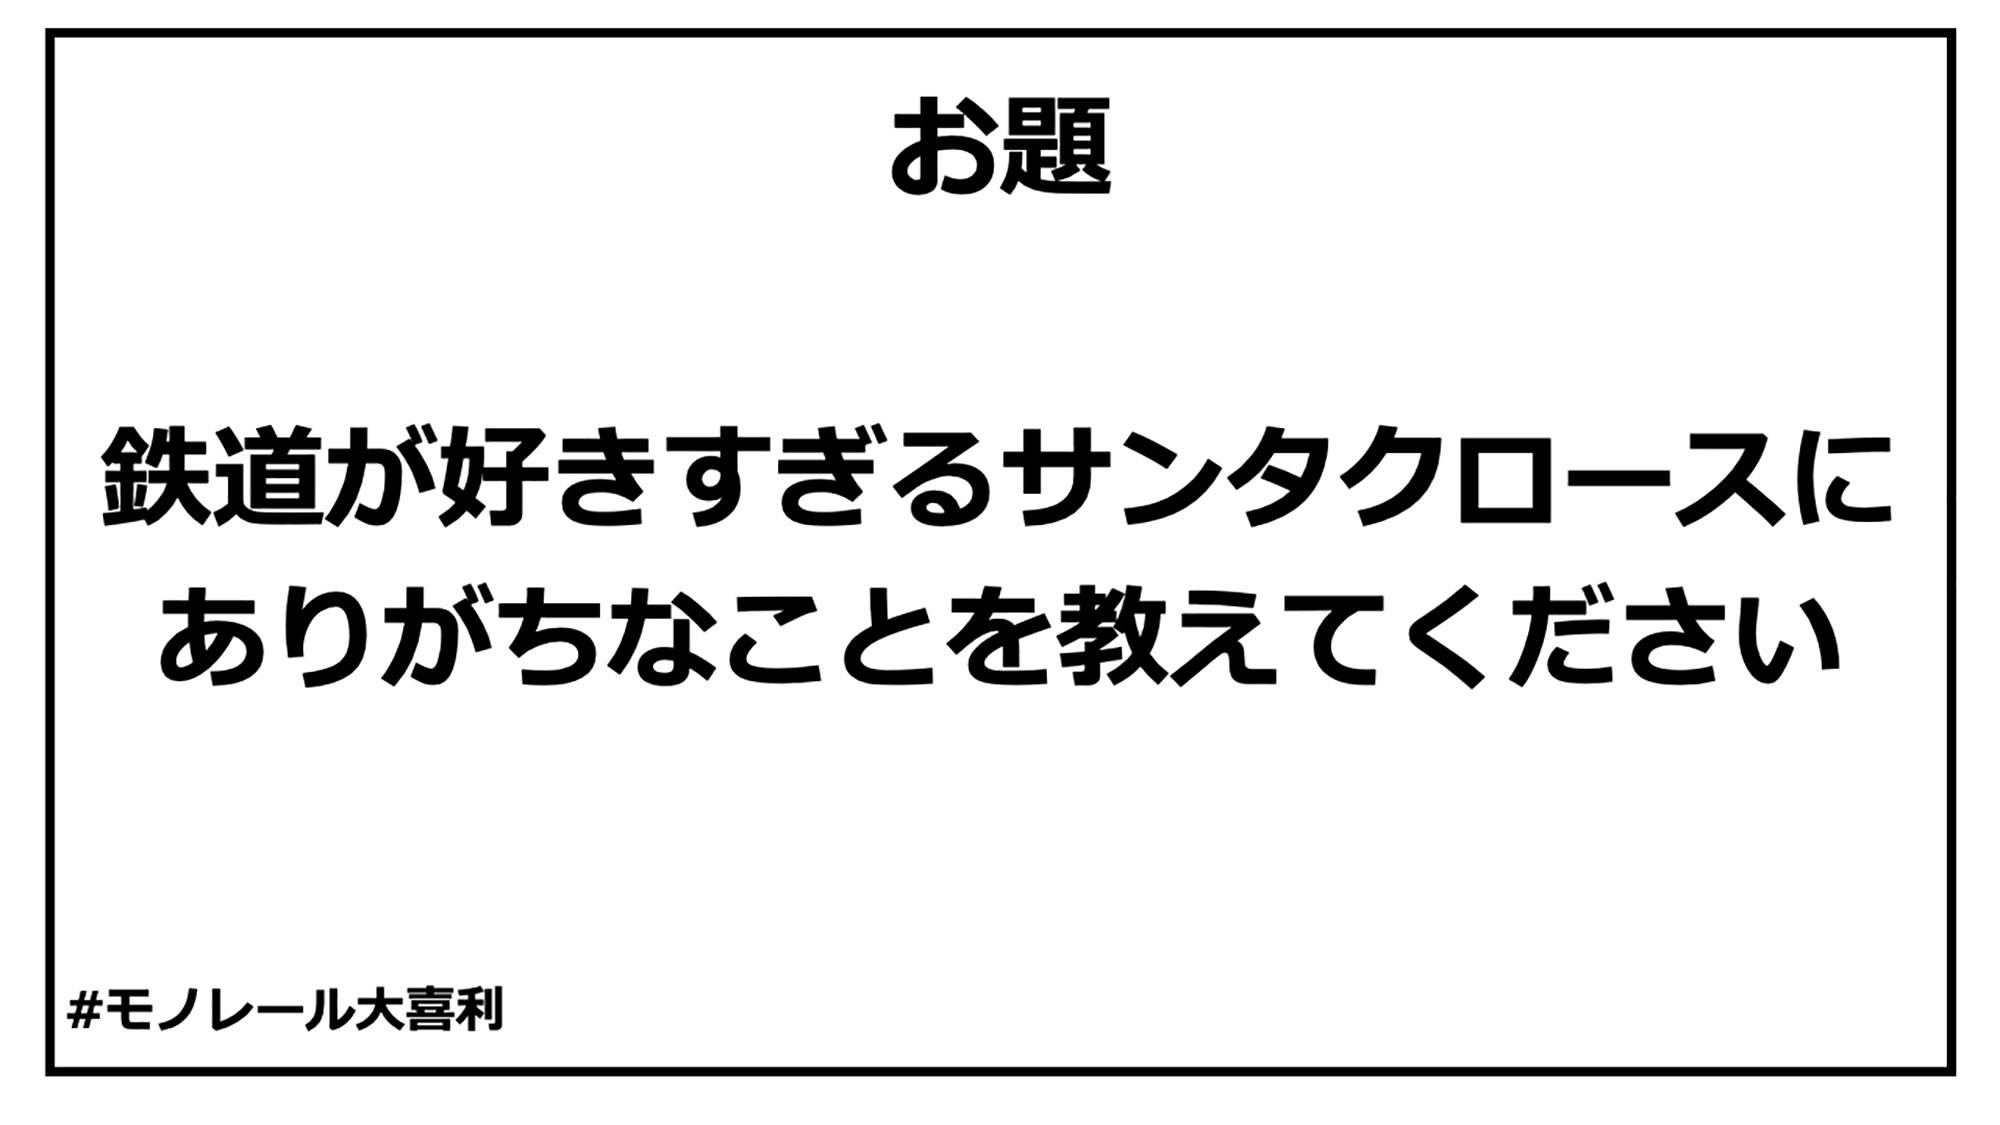 ogiri_answer_34_11.jpg